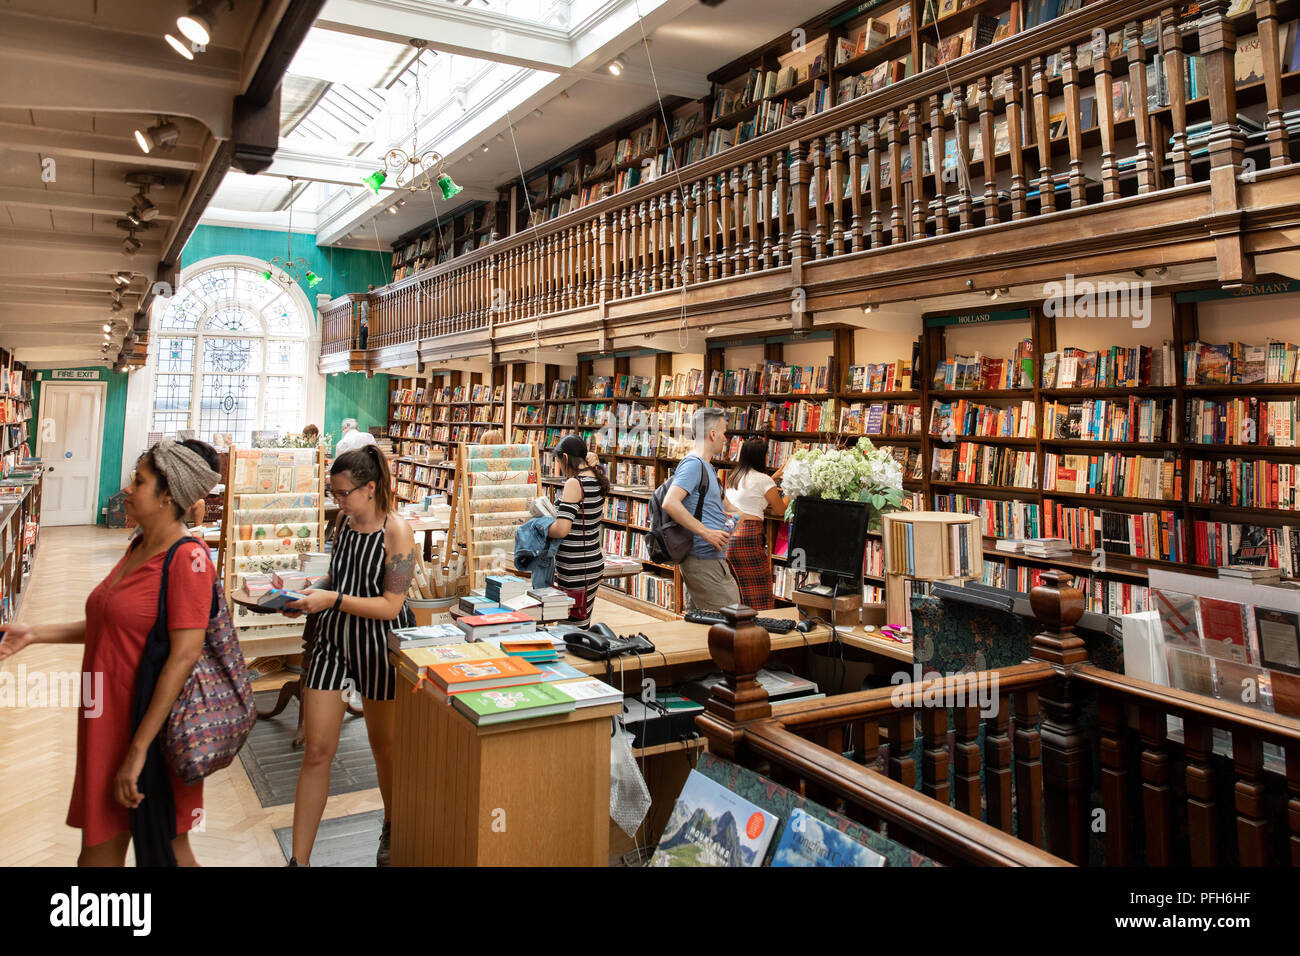 Daunt book store dans Marylebone High Street, Londres Photo Stock